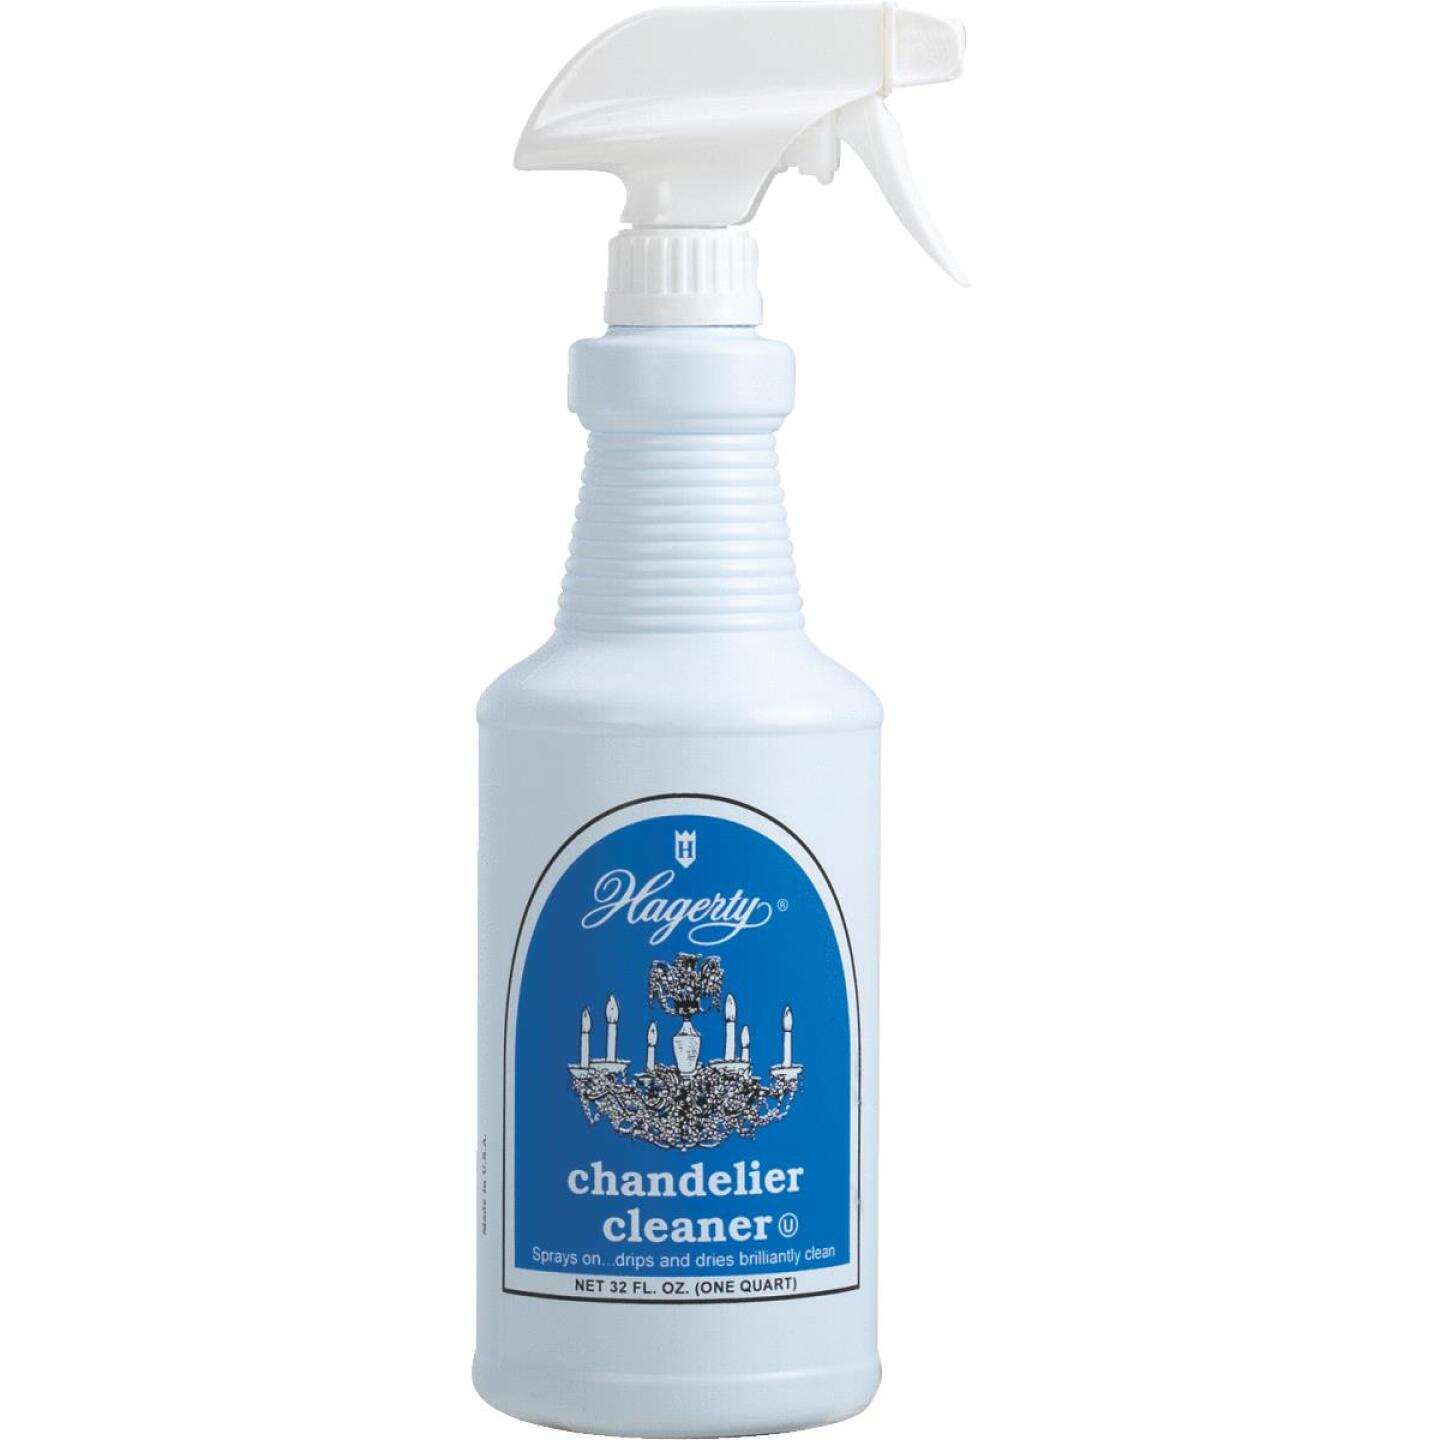 Hagerty 32 Oz. Chandelier Cleaner Image 1